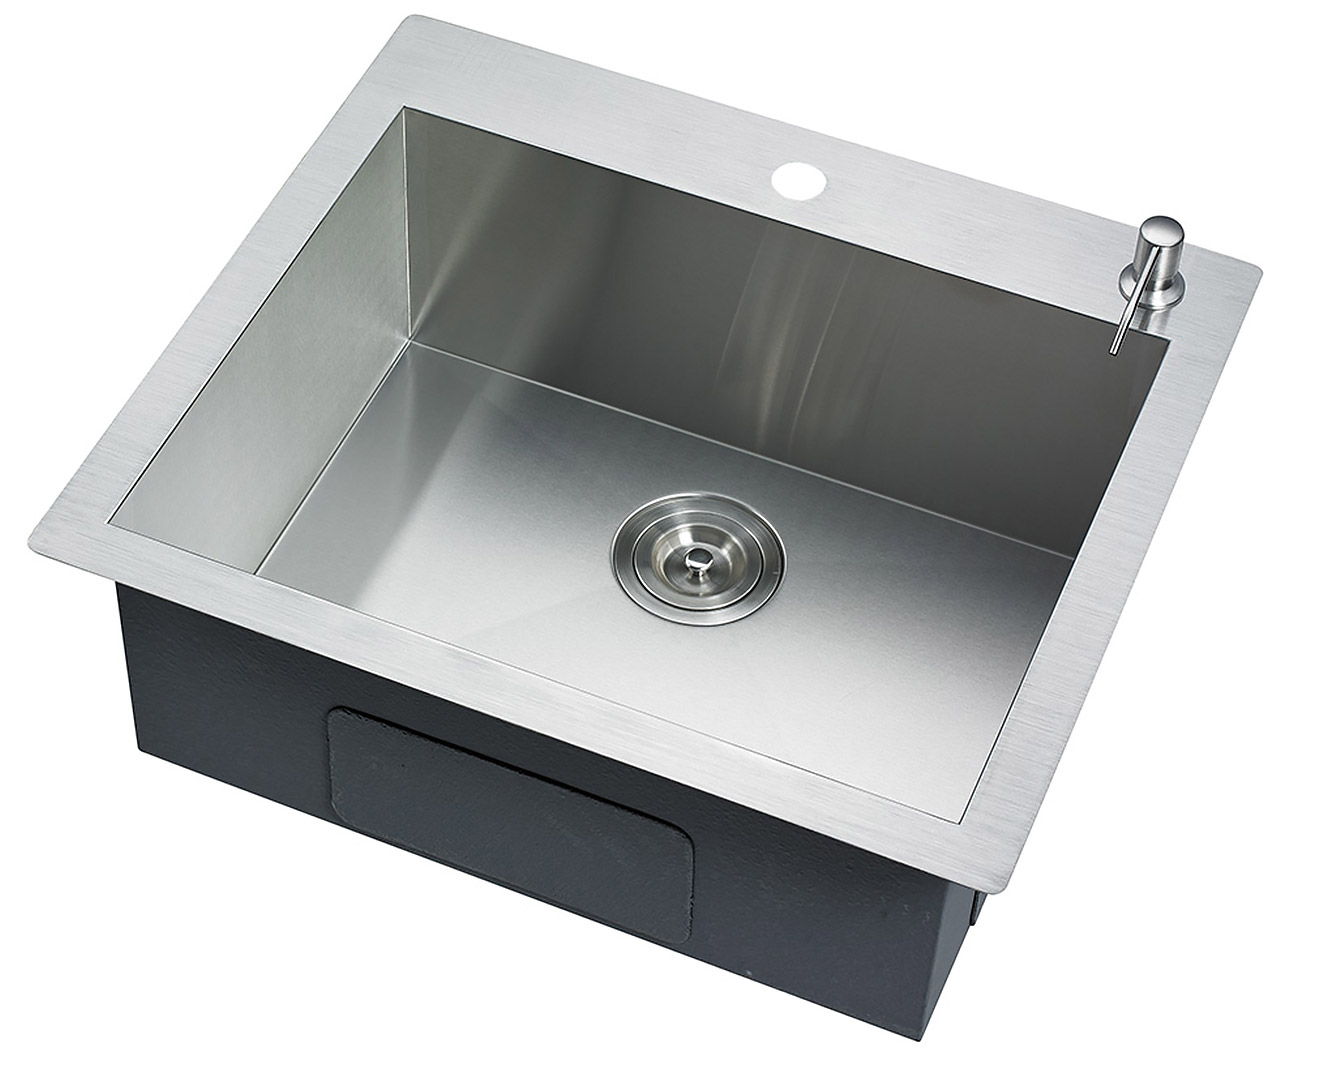 304 Stainless Steel Undermount Topmount Kitchen Laundry Sink - 530 x 500mm - $152.3